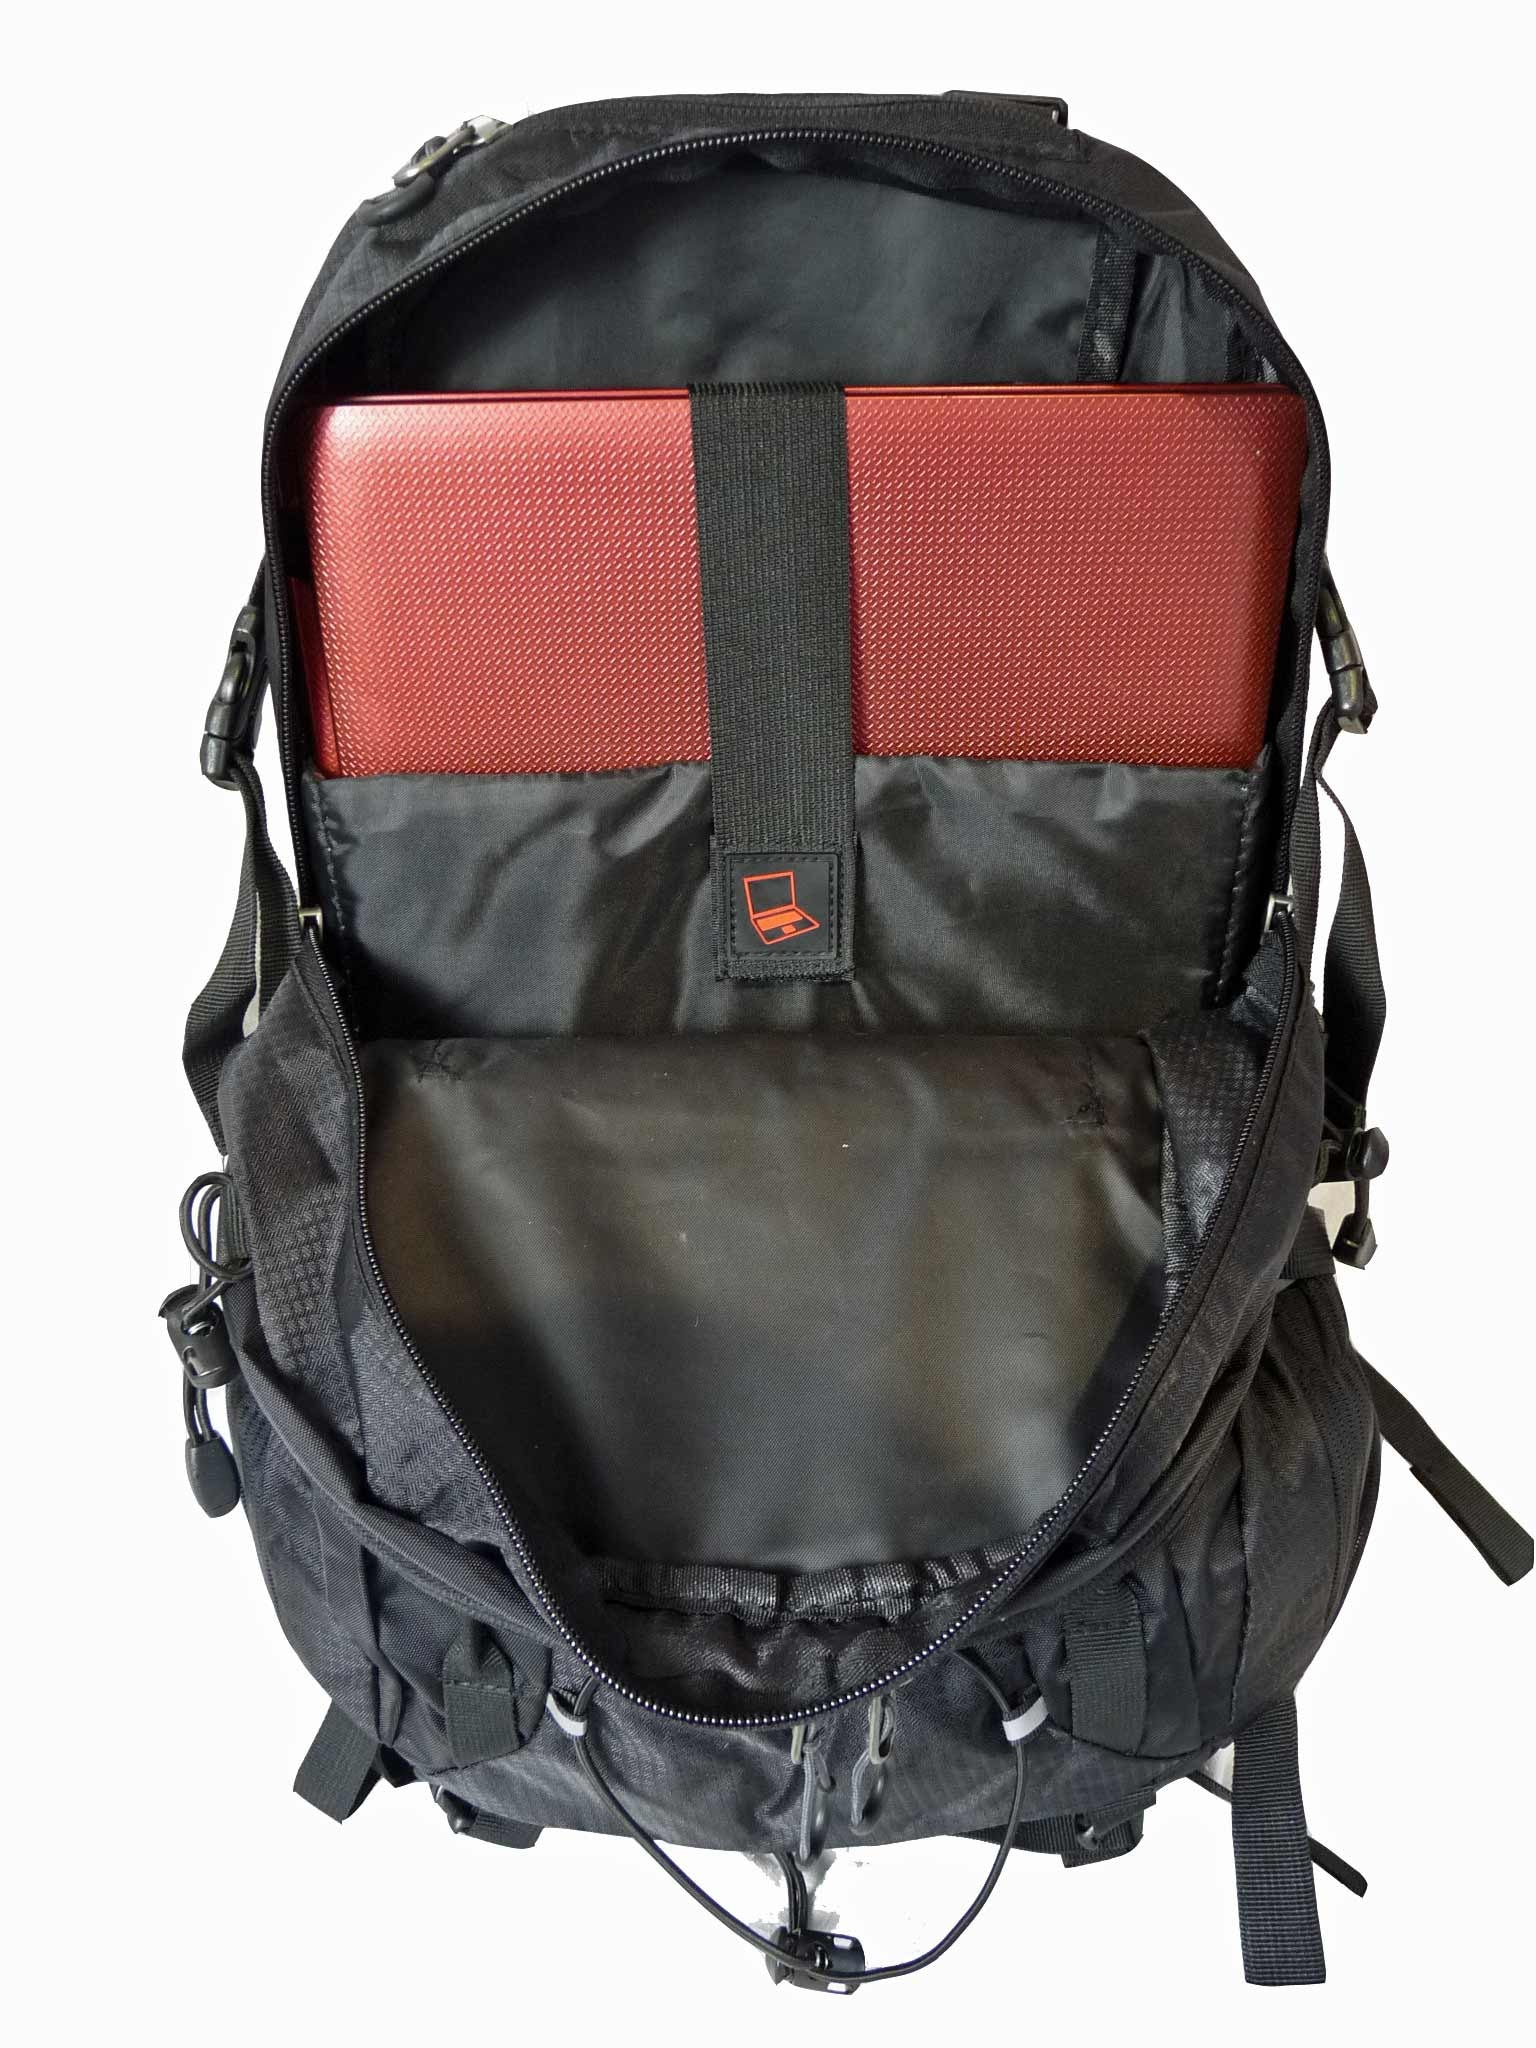 MacBook Air Backpack Rucksack Bag RL23K LAPTOP VIEW 2